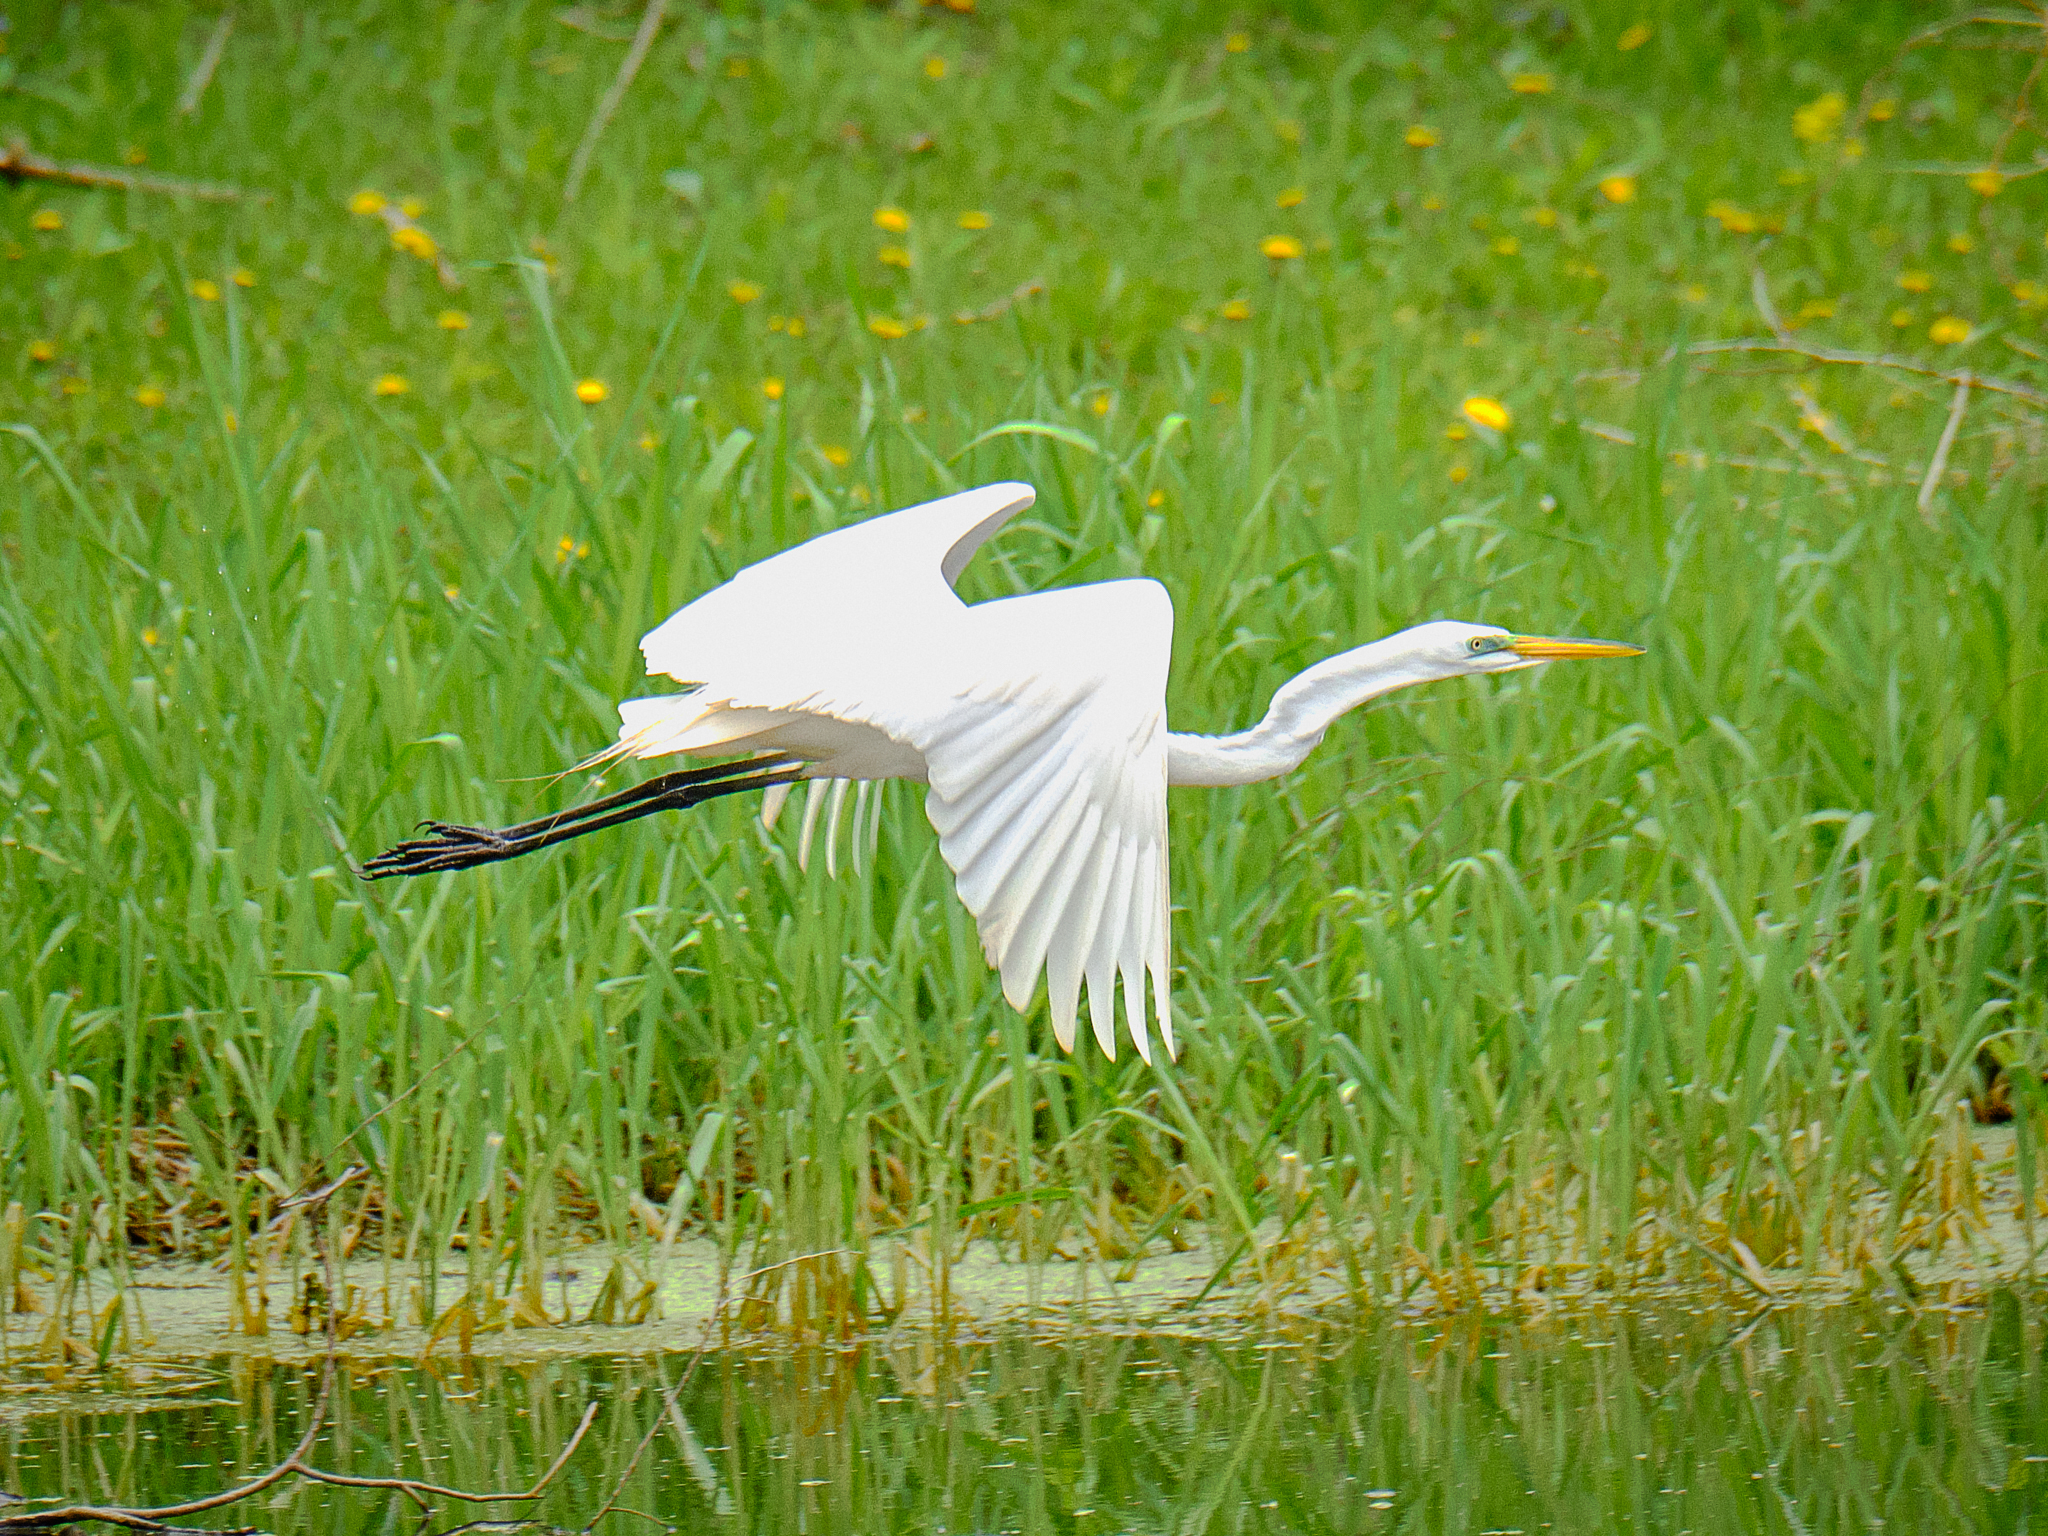 Egrets in flight2115.jpg